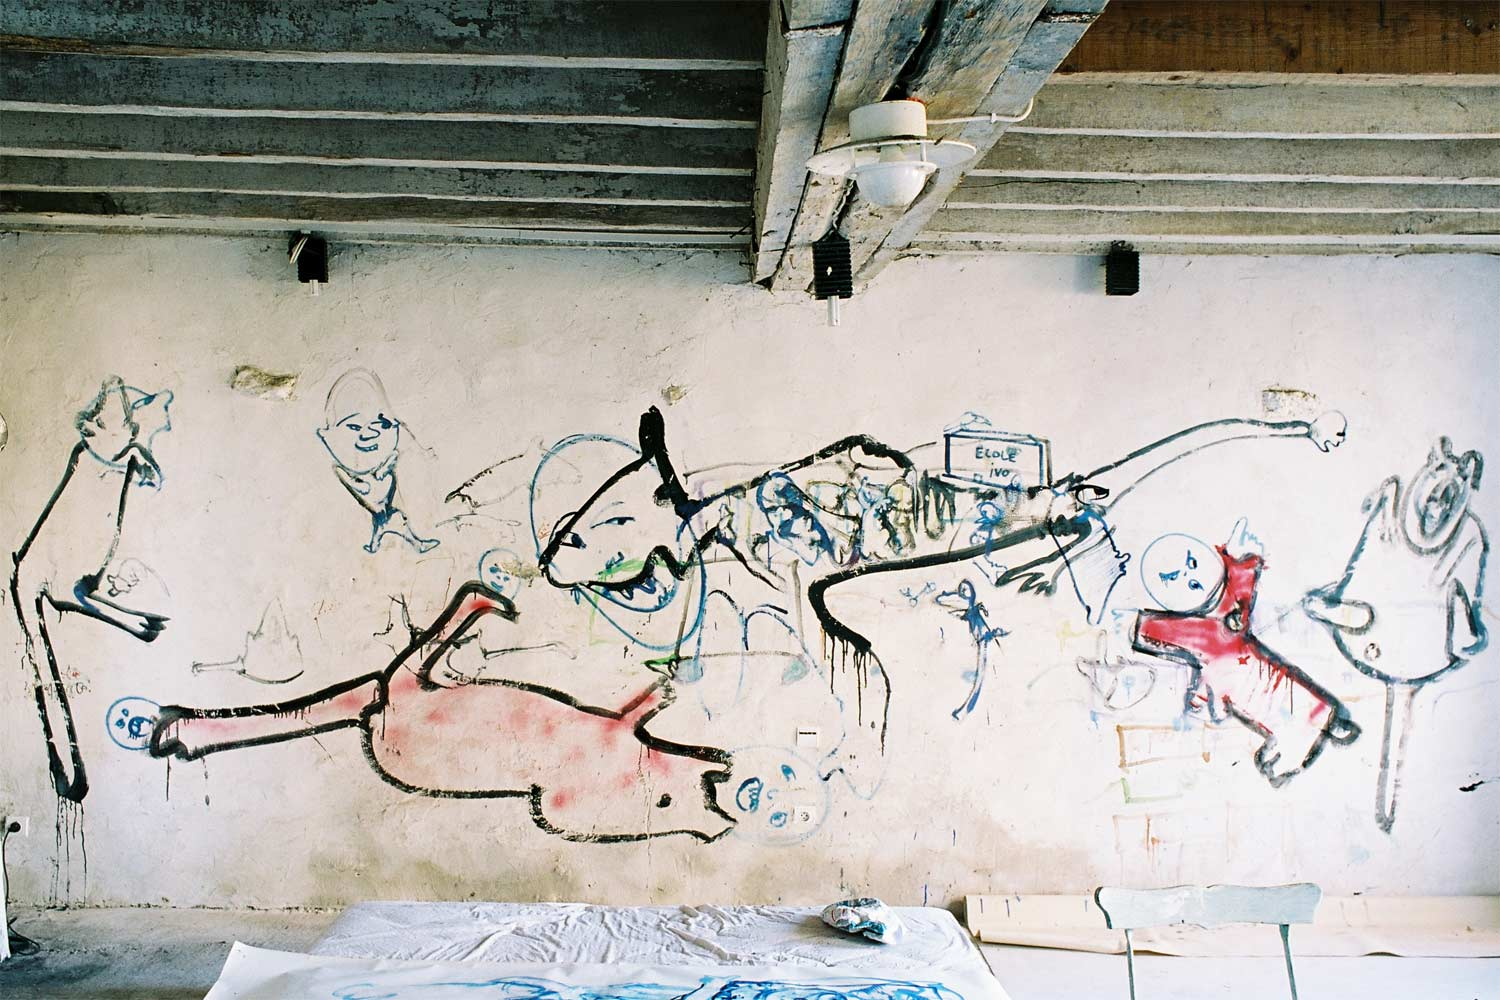 Third studio – Murals at Hérouval